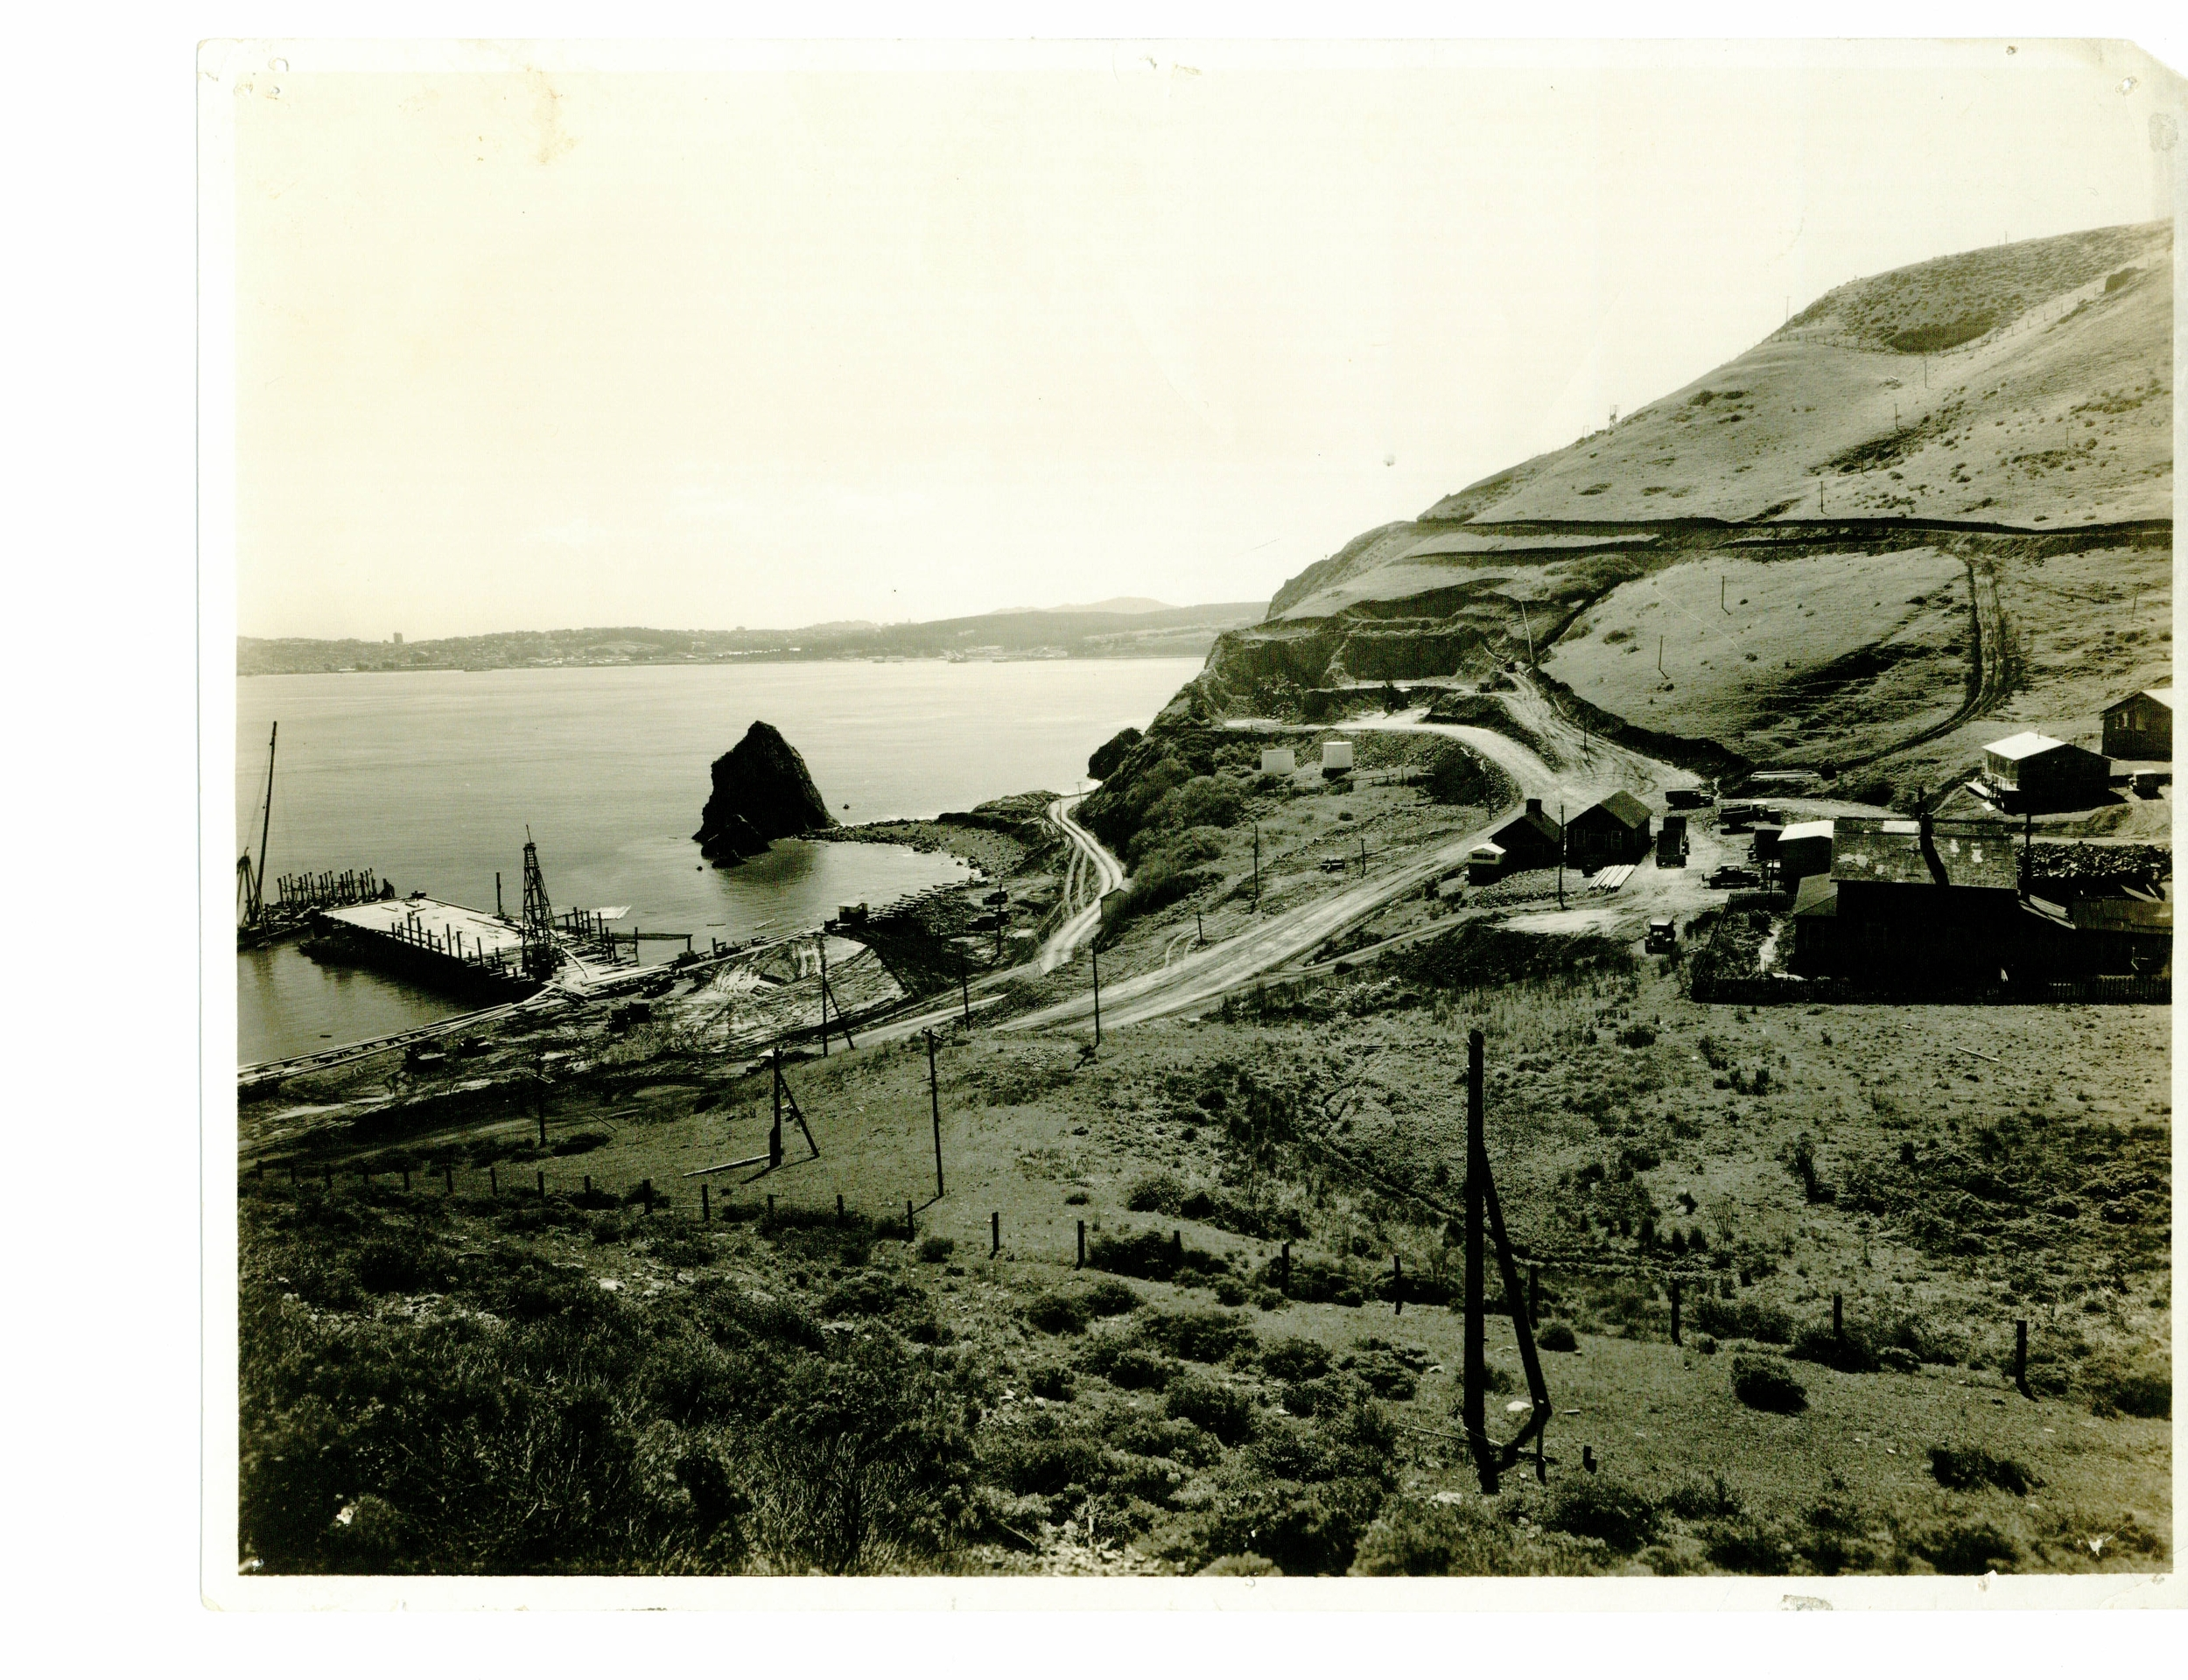 Lime Point in 1933, with Needle Rock to the left, looking across to San Francisco.  Preliminary work has commenced on the Marin anchorage of the Golden Gate Bridge.  Photo courtesy of Sausalito Historical Society.